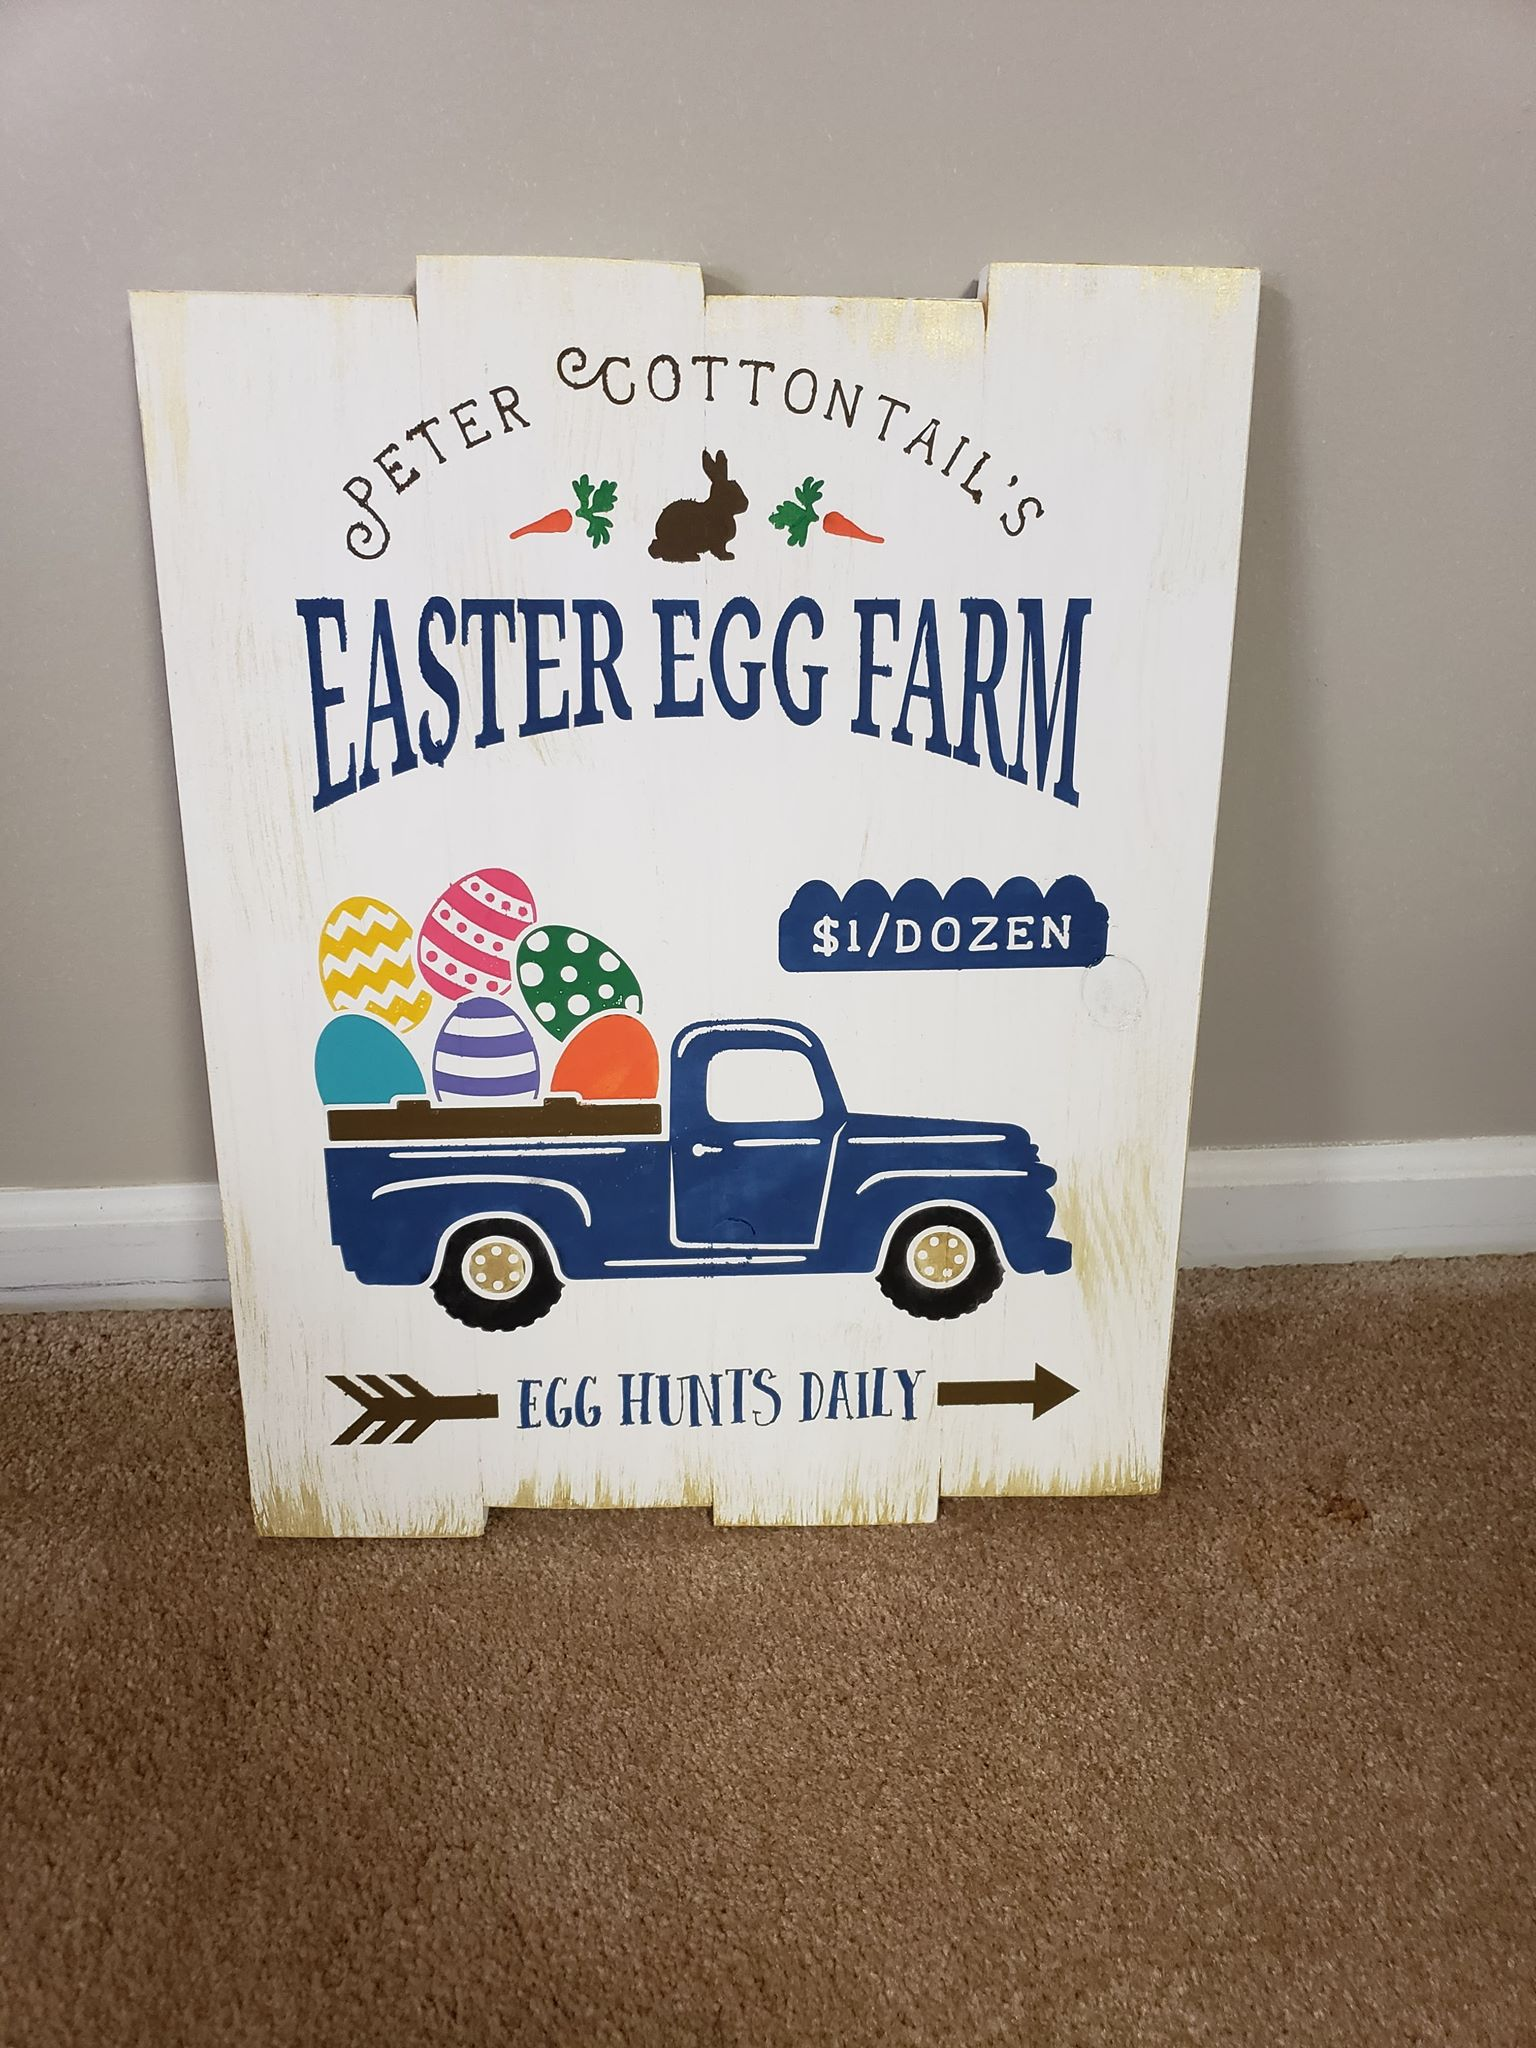 Peter Cottontail's Easter egg farm with truck